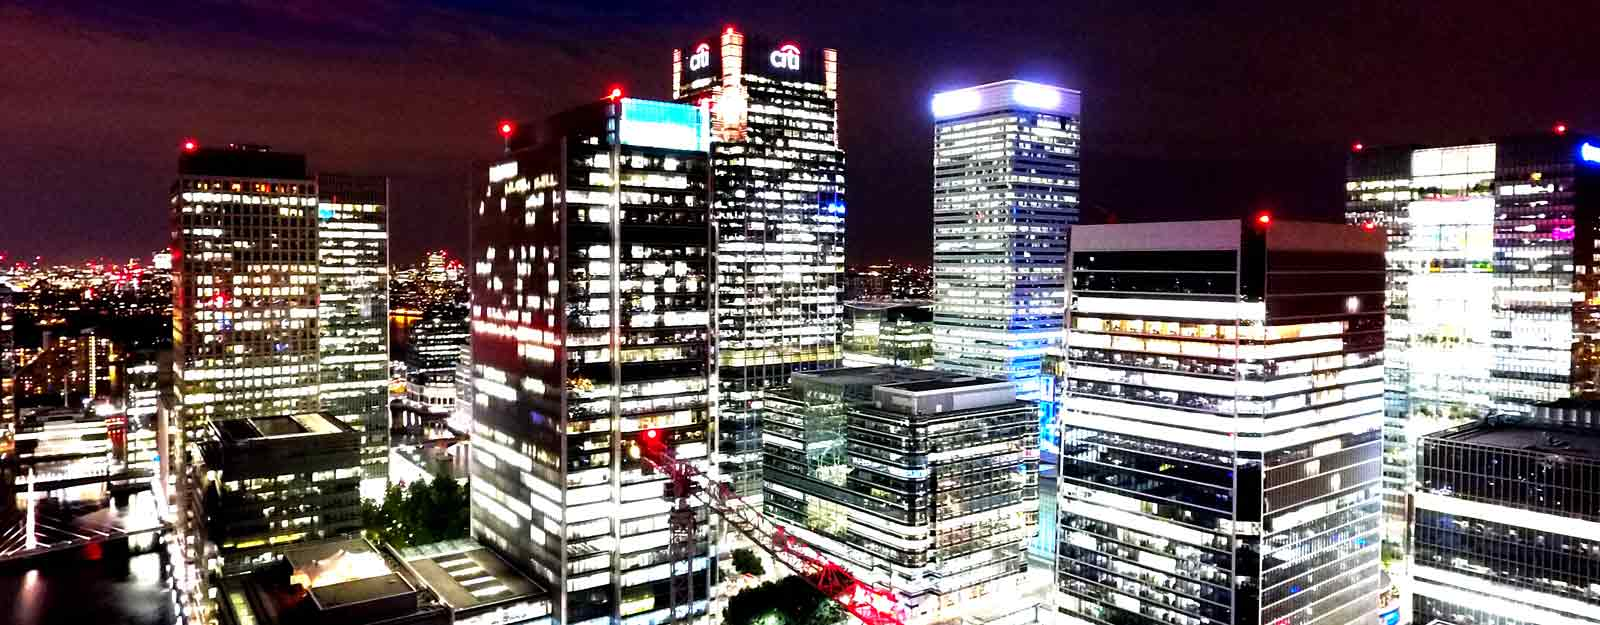 Photo of buildings in the London city docklands at night.